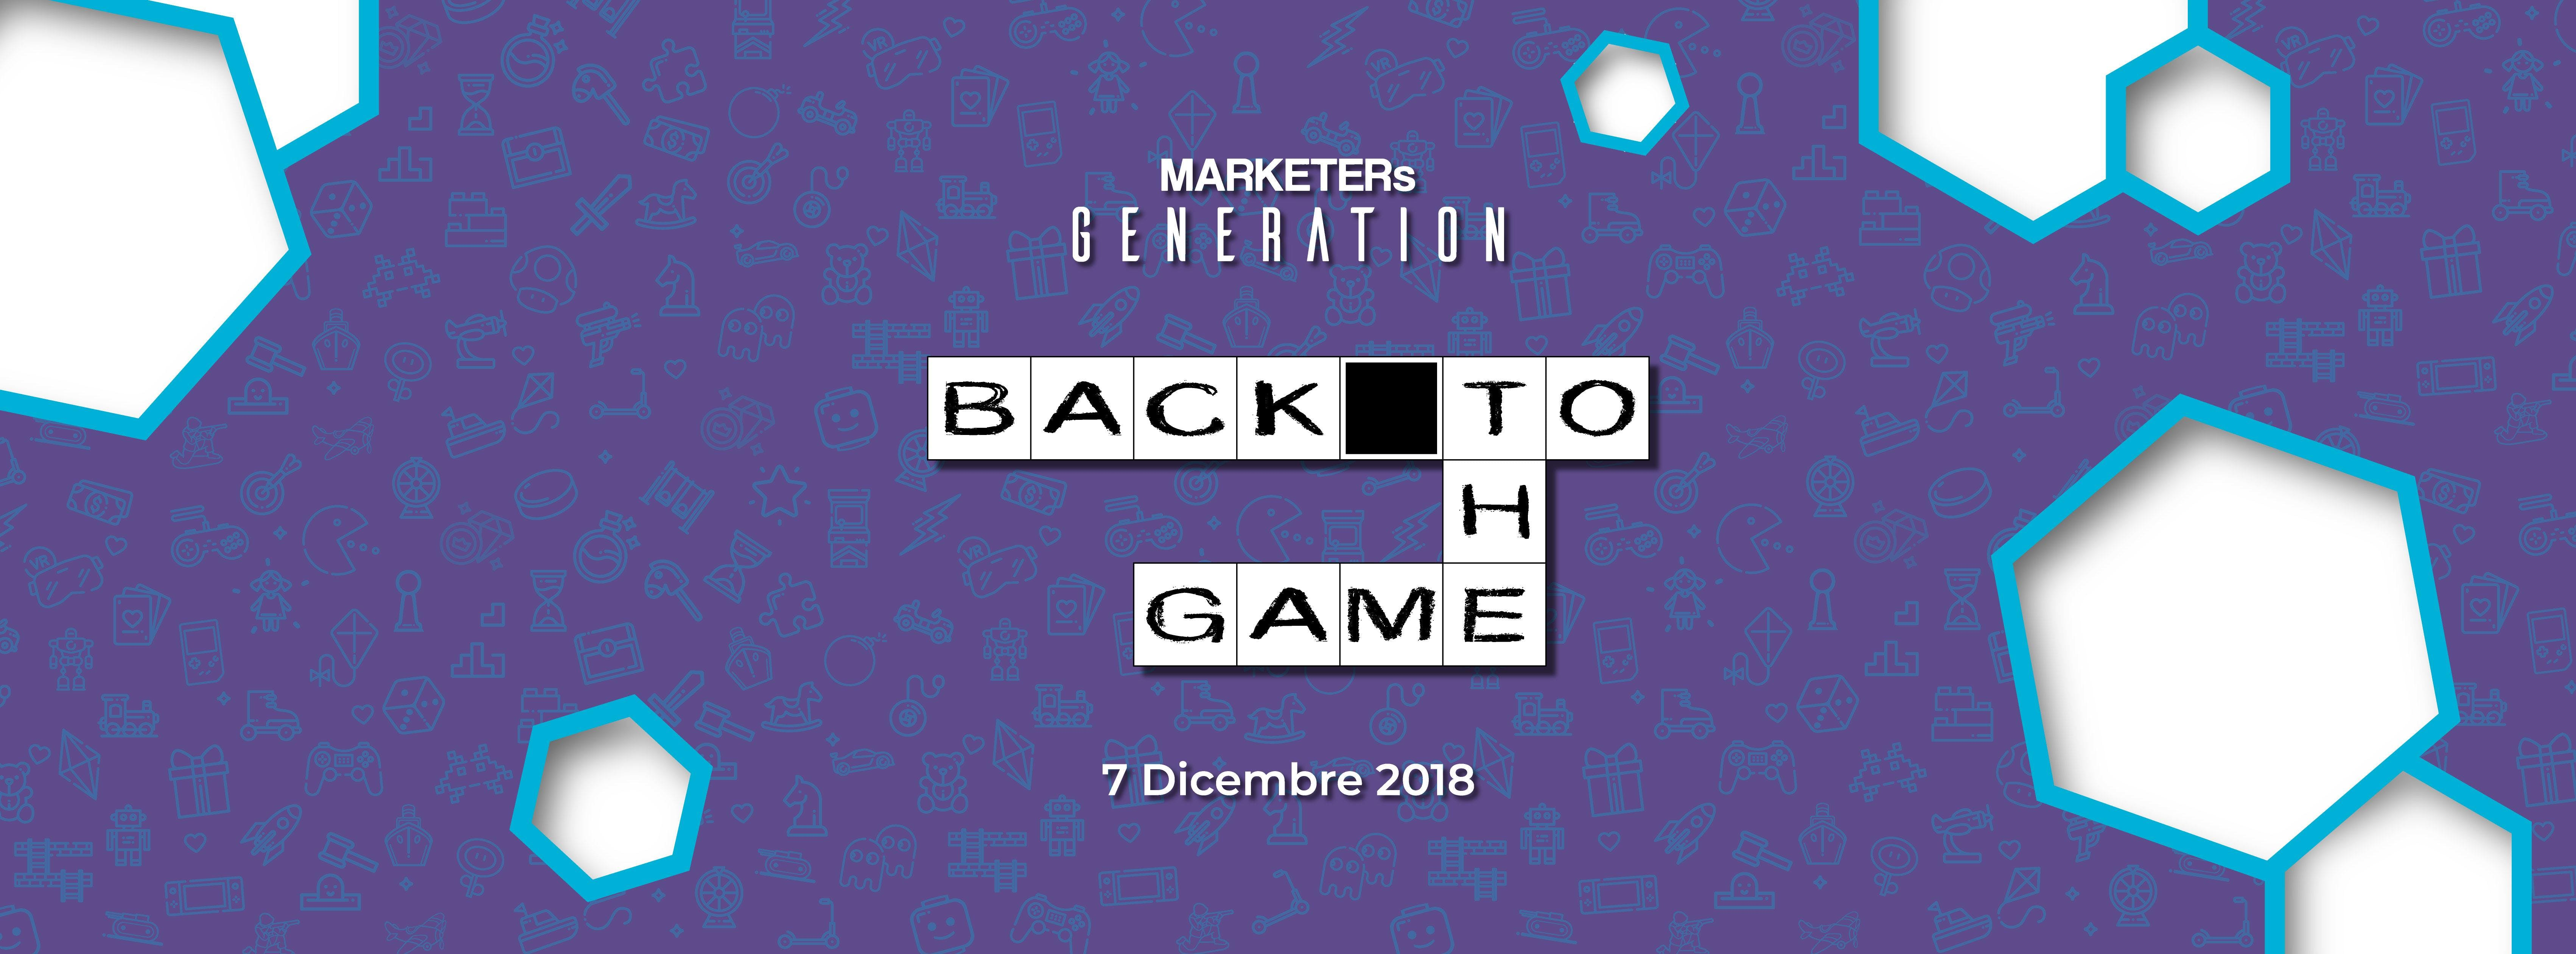 #MGeneration: Back to the Game